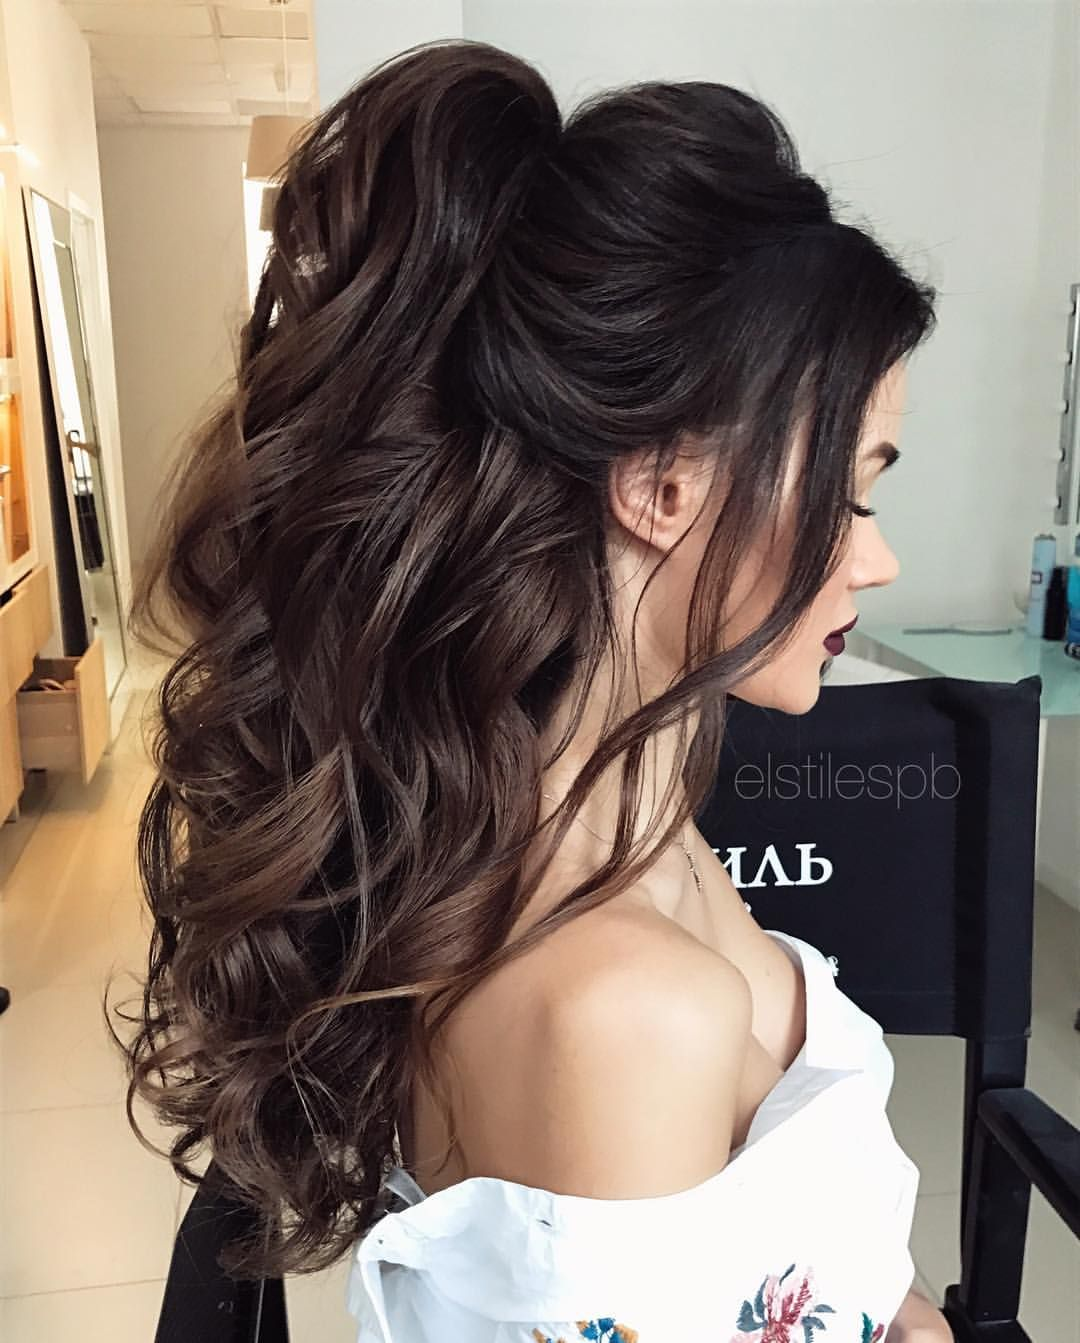 Pin by sarah on fancy hair pinterest instagram hair style and prom